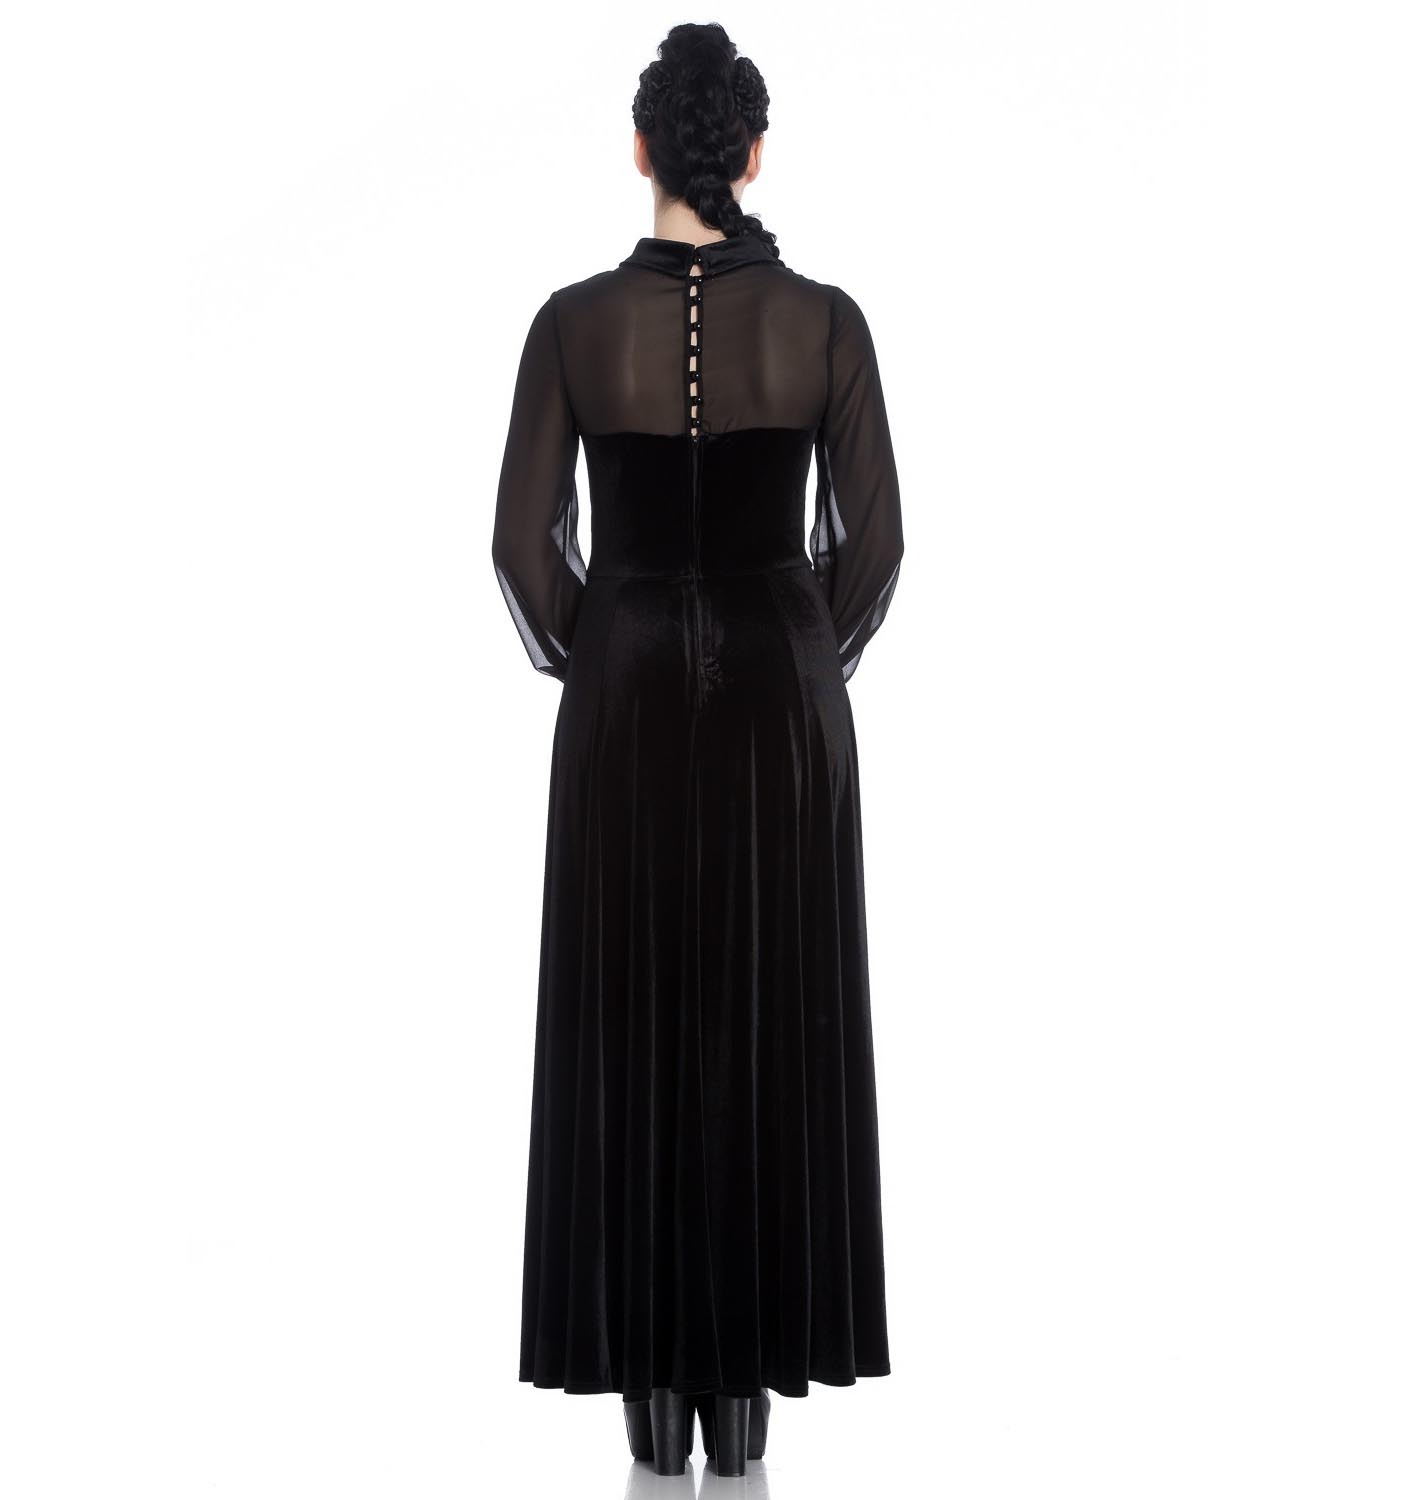 Hell-Bunny-Vampire-Goth-Elegant-Maxi-Dress-ESTELLE-Black-Velvet-Mesh-All-Sizes thumbnail 5